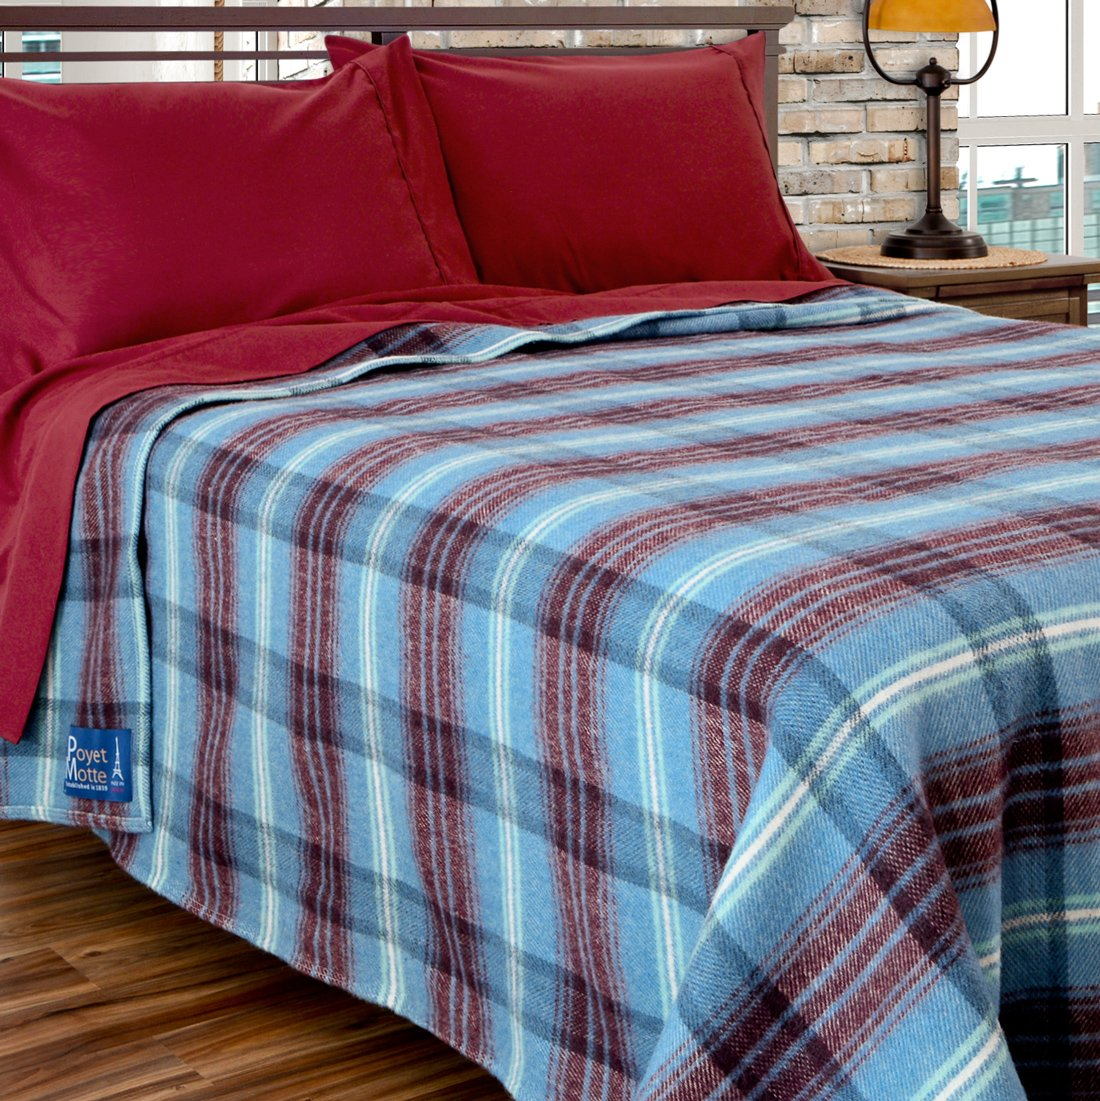 Poyet Motte Chevreuse Heavyweight Wool Blend Oversized Blanket, Machine Washable (Berry Plaid, Full/Queen Size) by Poyet Motte Made In France